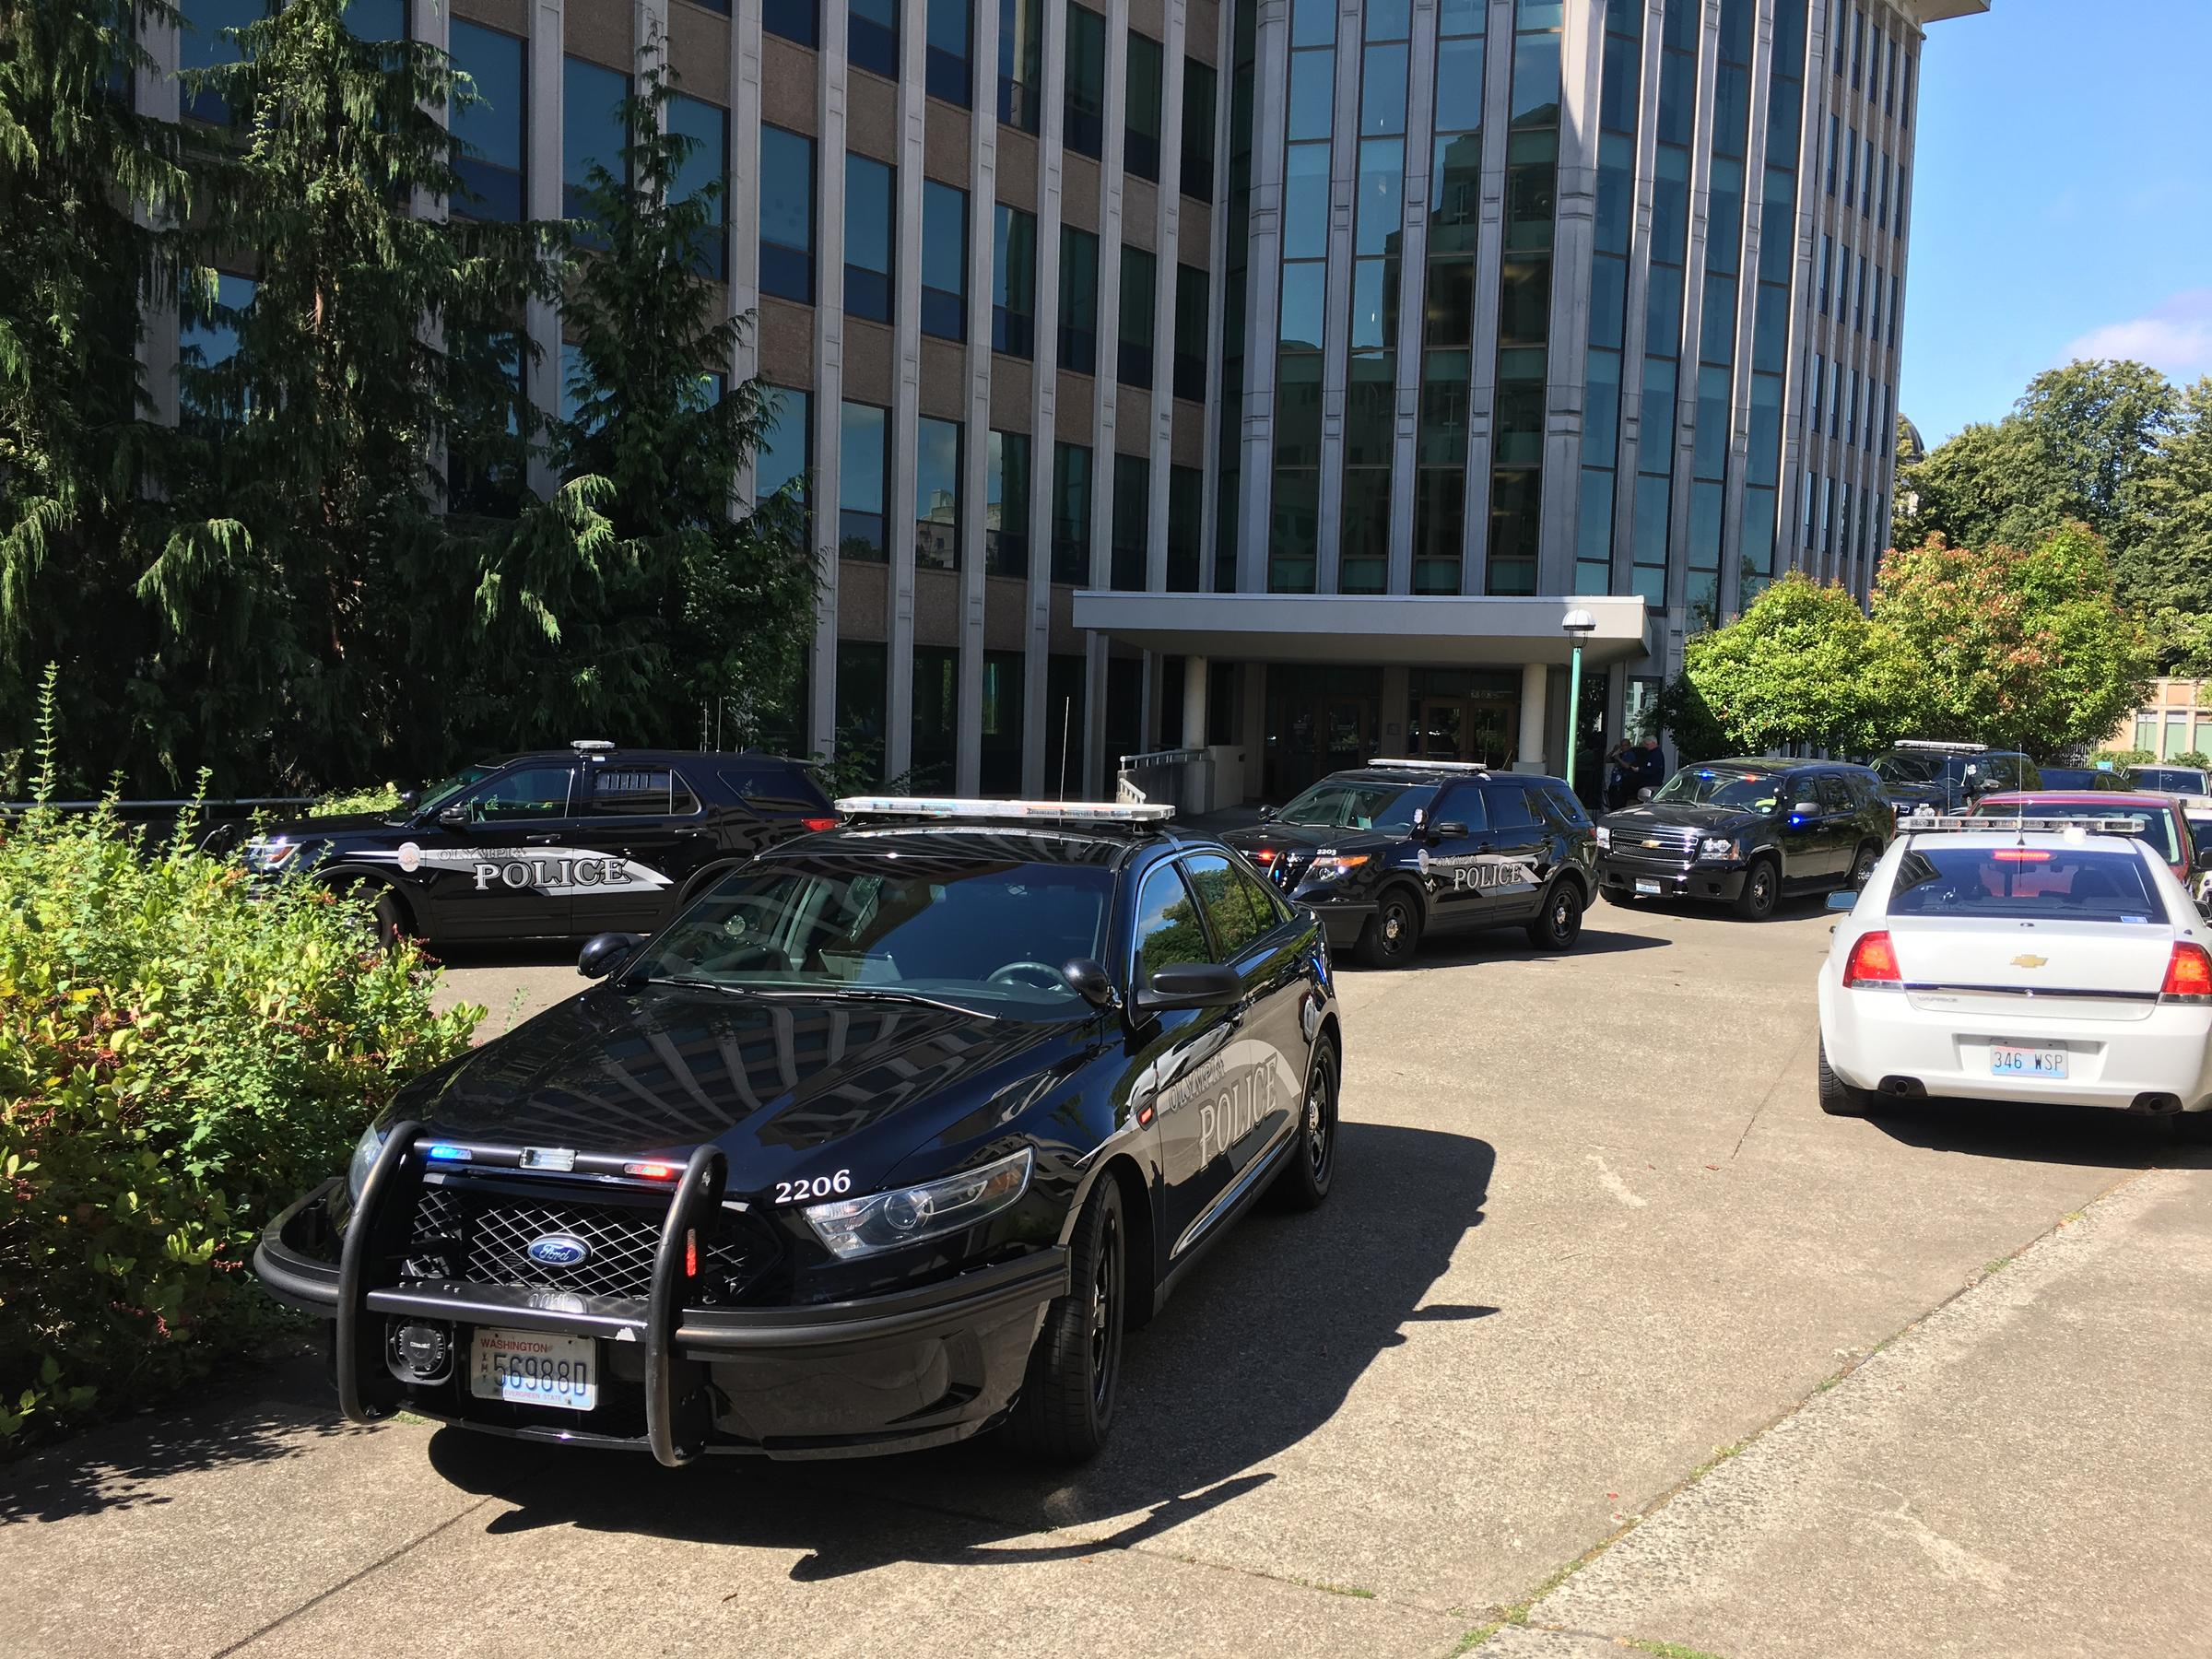 Patrol cars block the entrance of the Washington Department of Licensing building as officers investigate reports of a possible gunshot